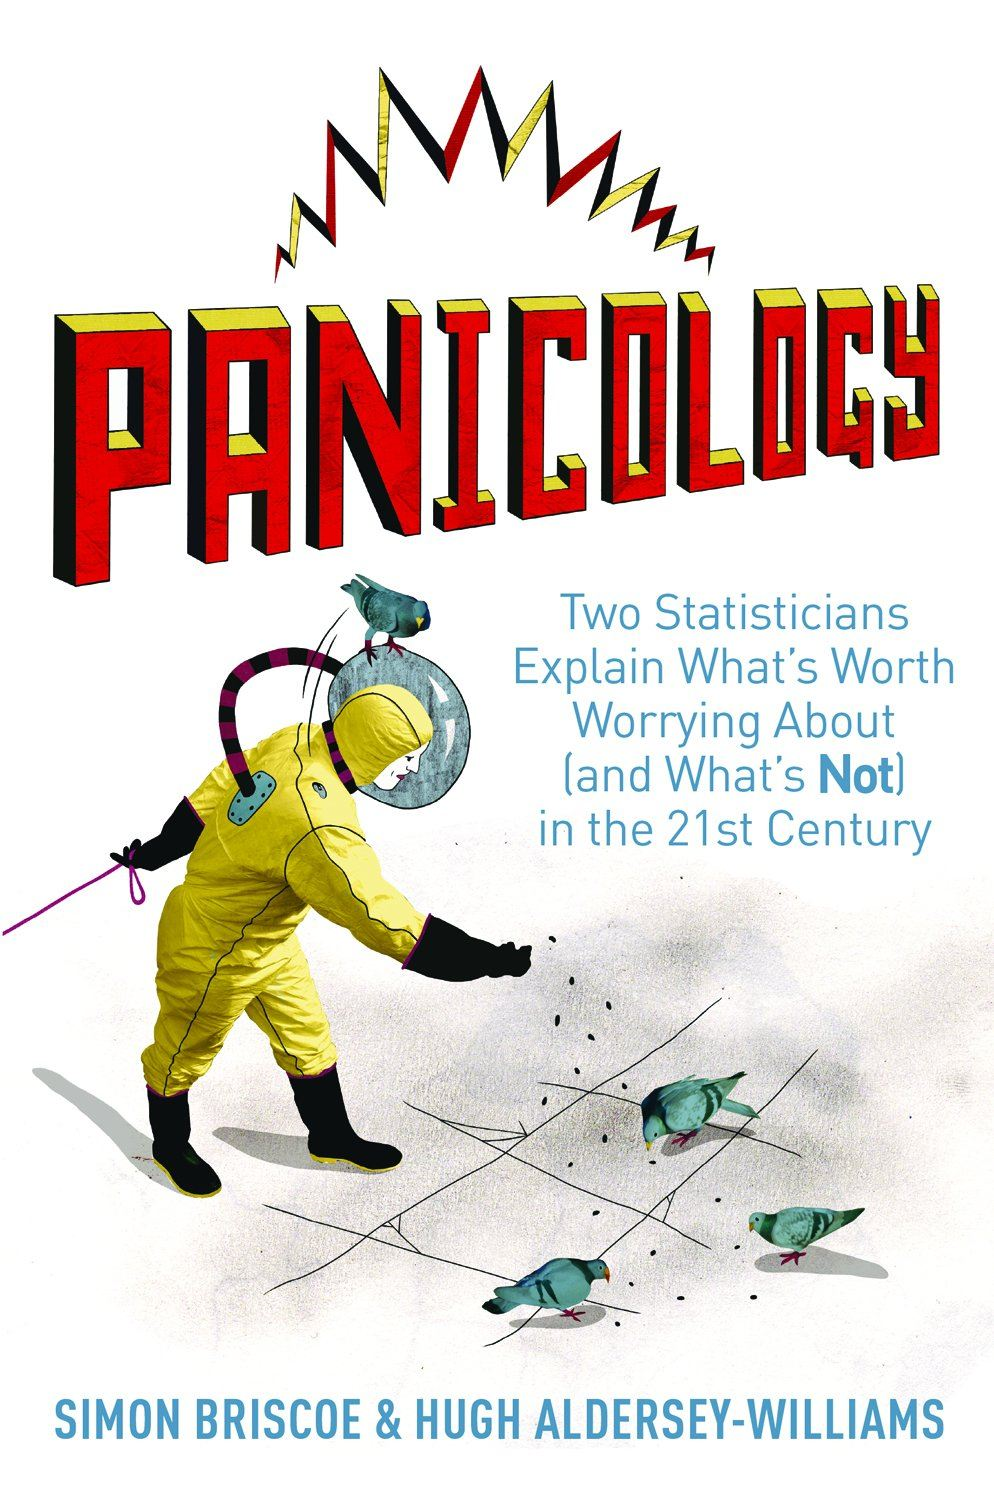 Panicology: Two Statisticians Explain What's Worth Worrying About (and What's Not) in the 21st Century